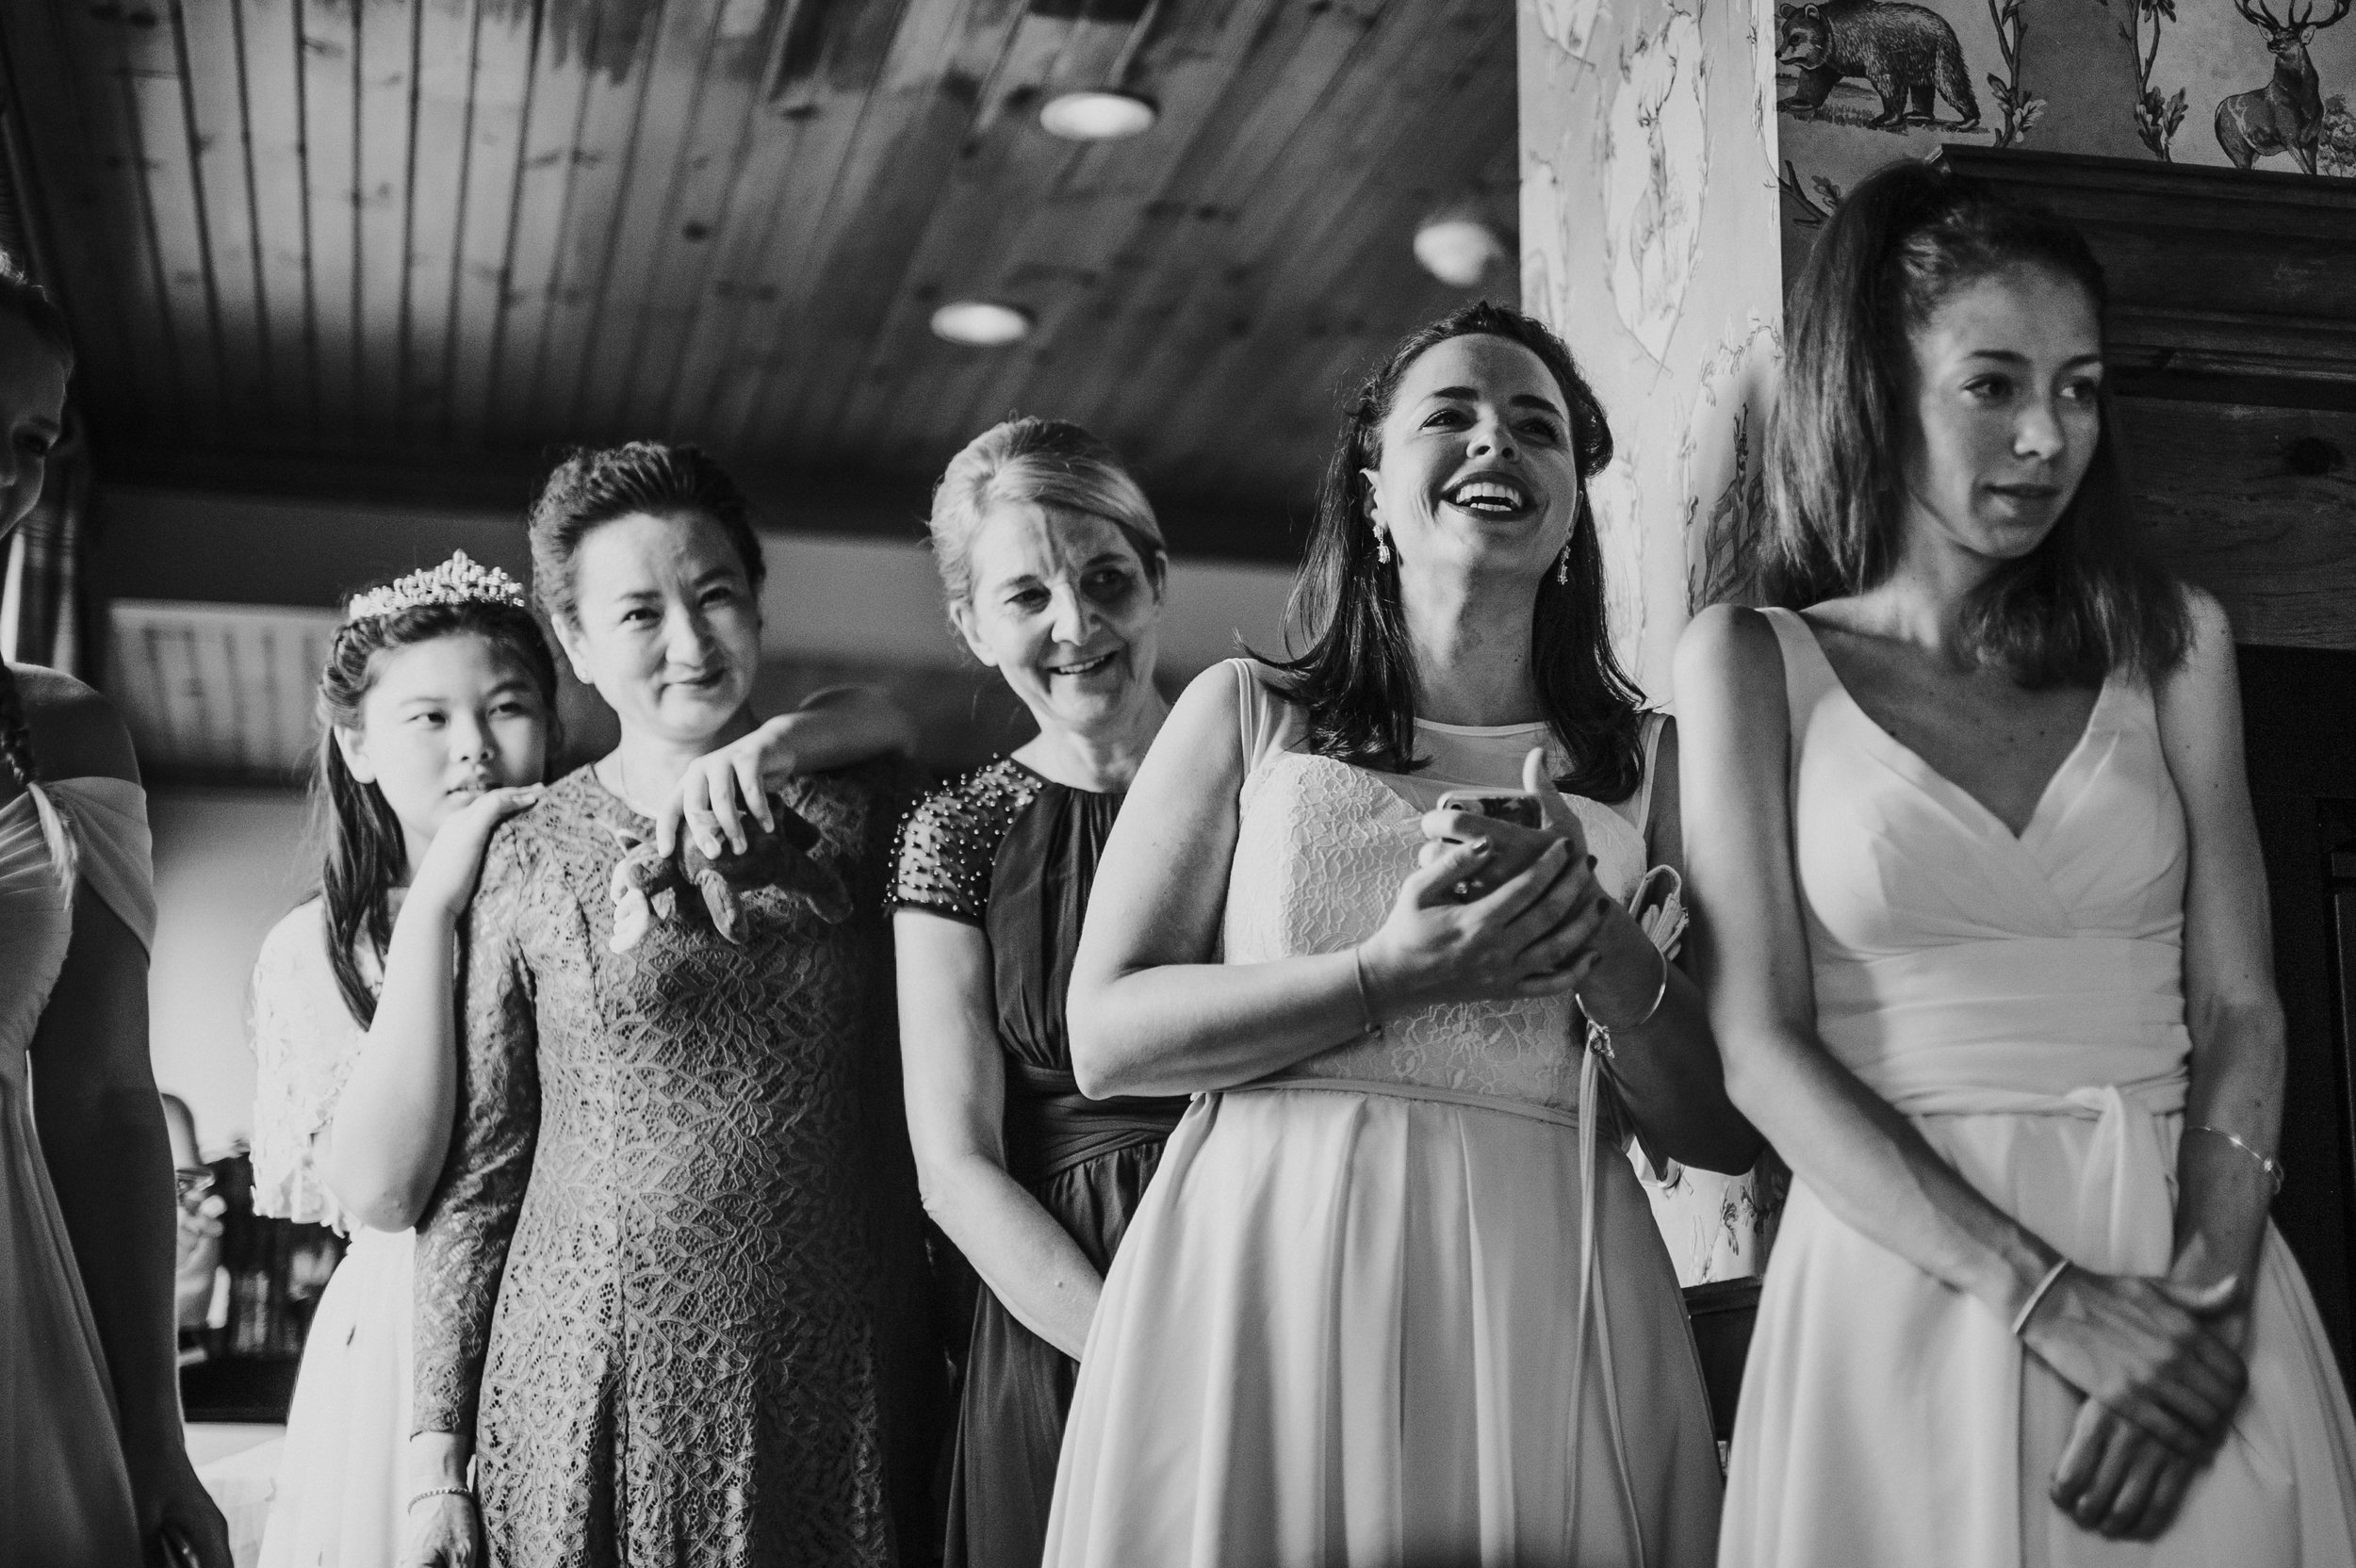 Wedding party reaction to bride opening gift from groom